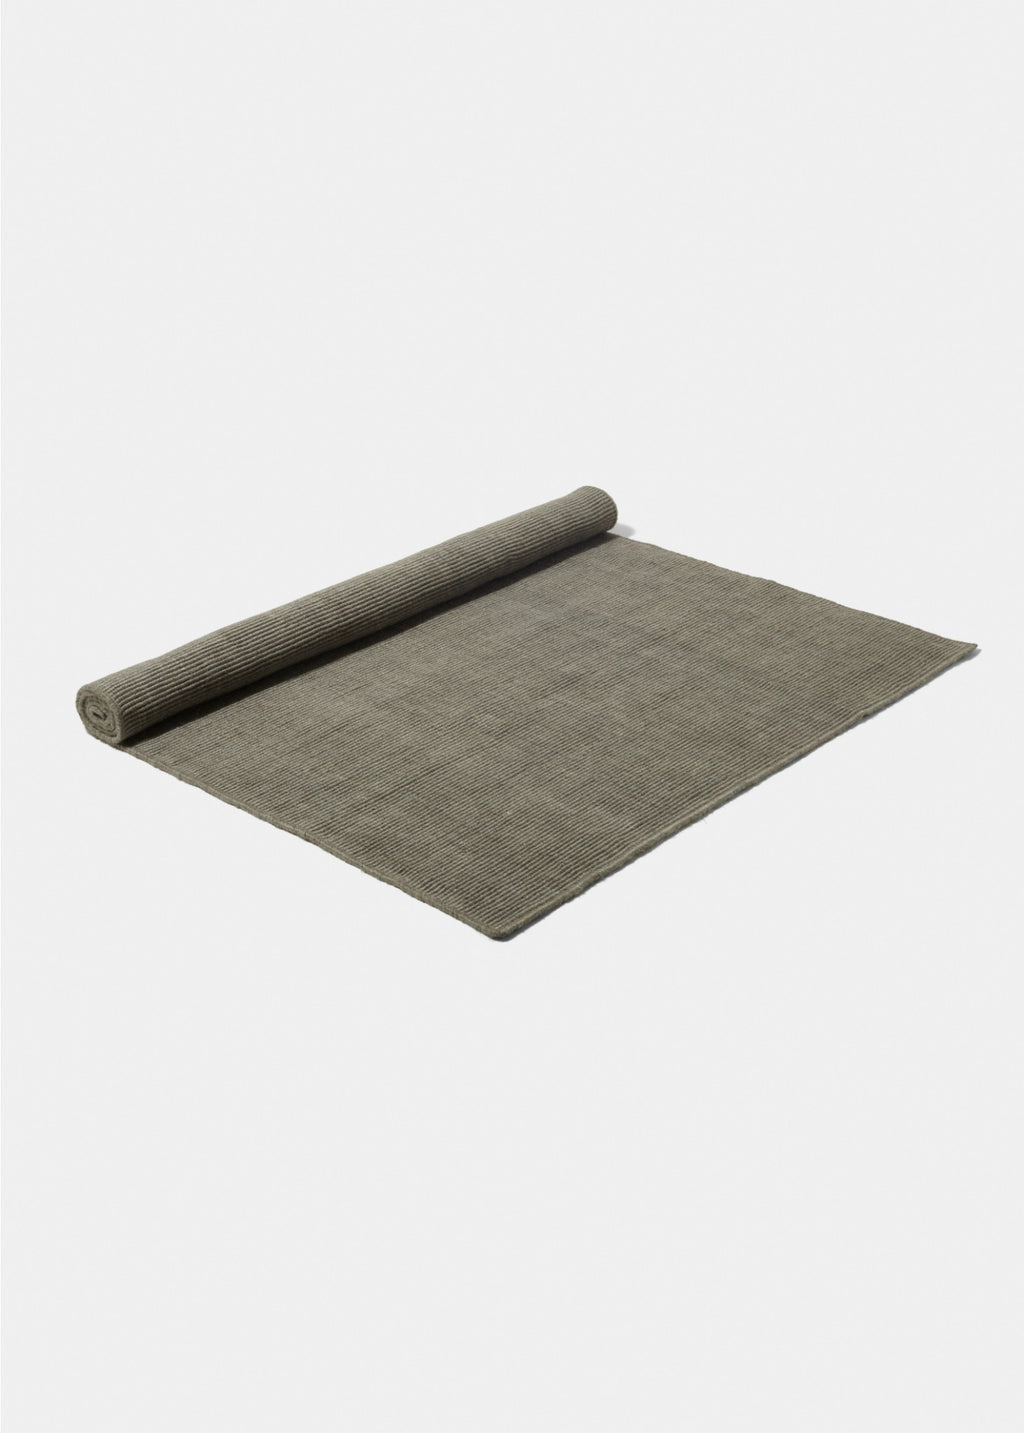 Green Grey Jute Rug - YUYU Sustainable Home Goods